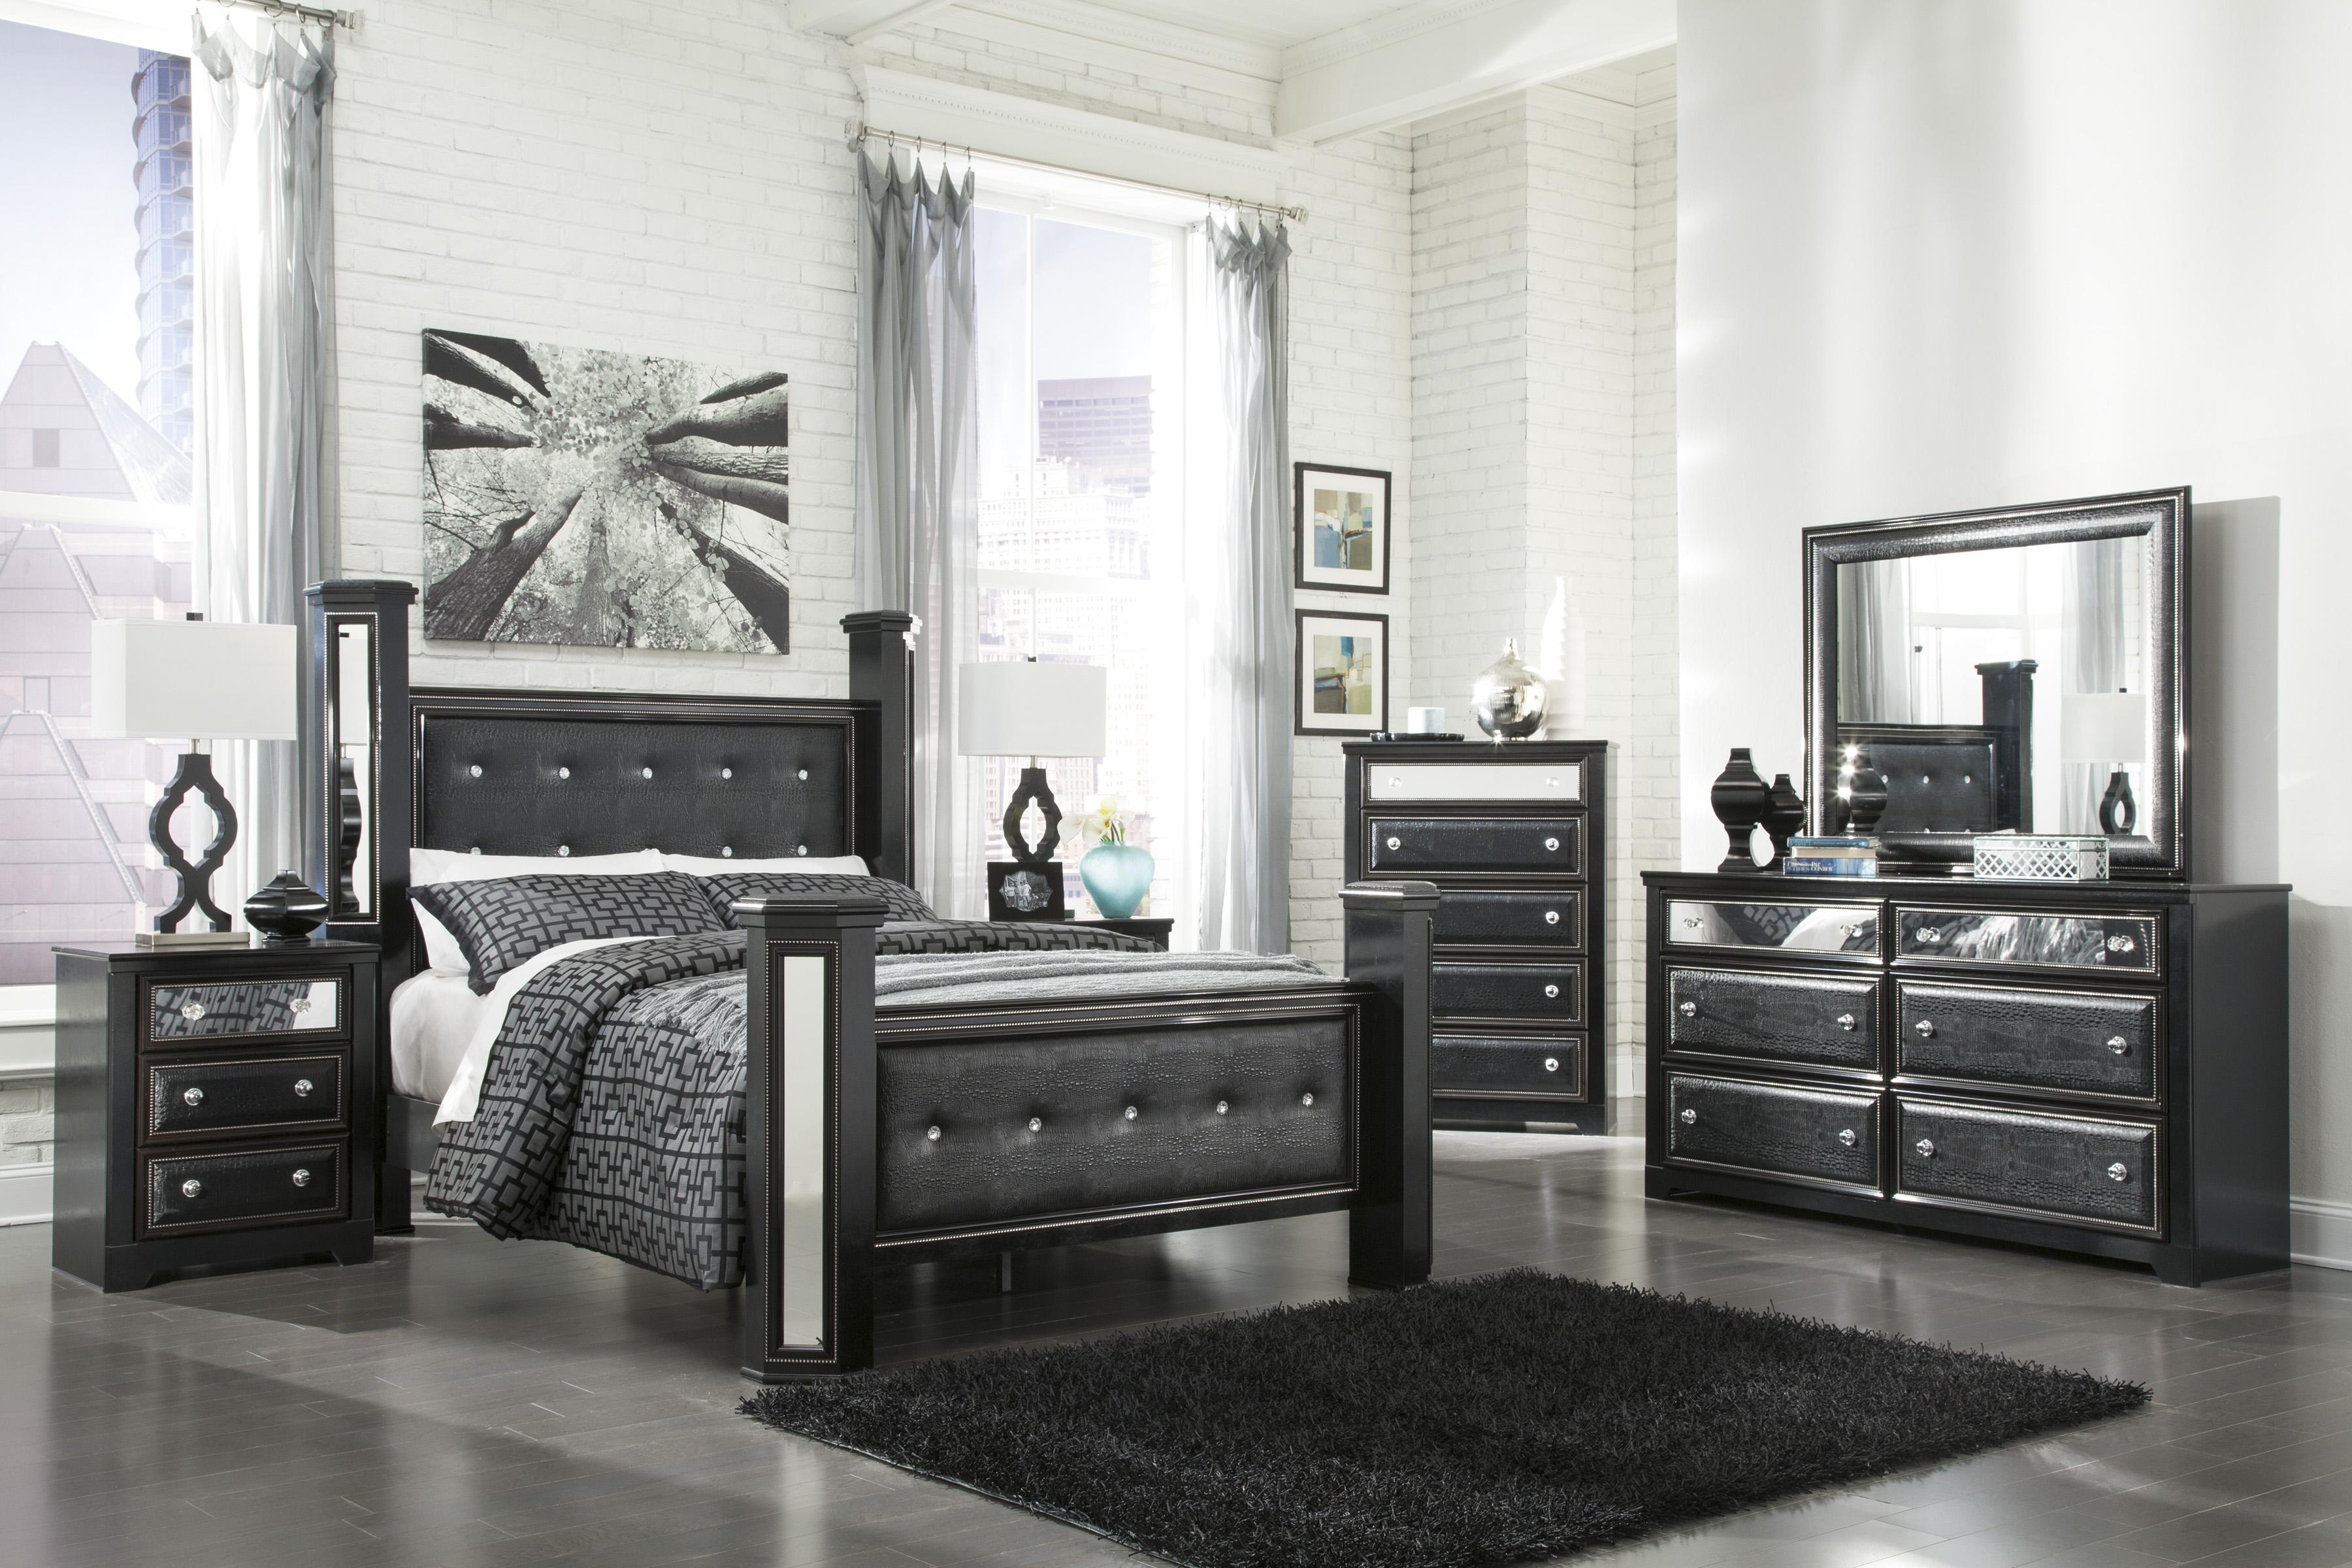 Contmporary Upholstered Queen Poster Bed by Signature Design by